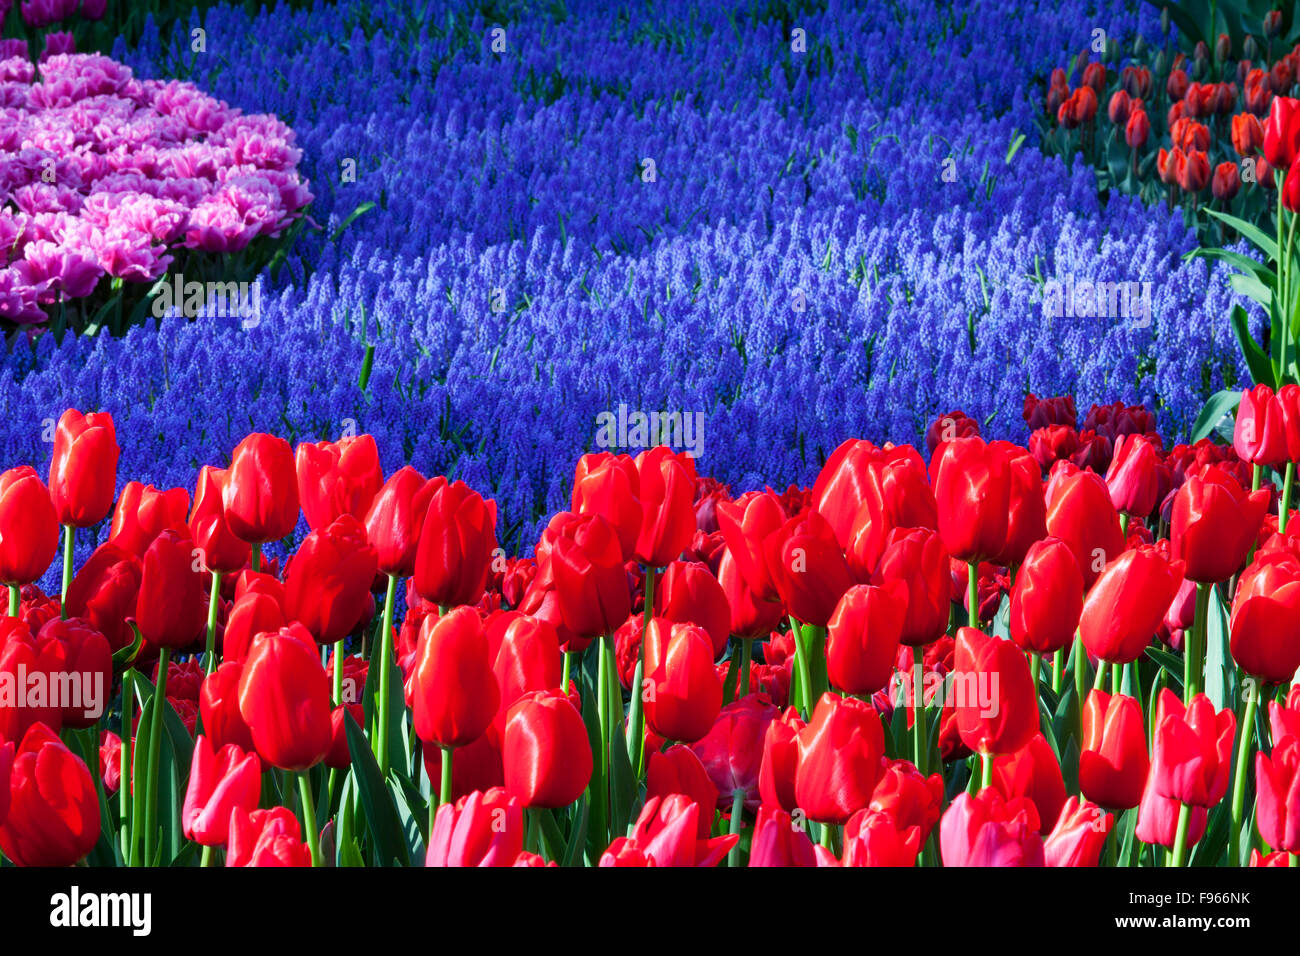 Tulips in Keukenhof Gardens, Netherlands - Stock Image